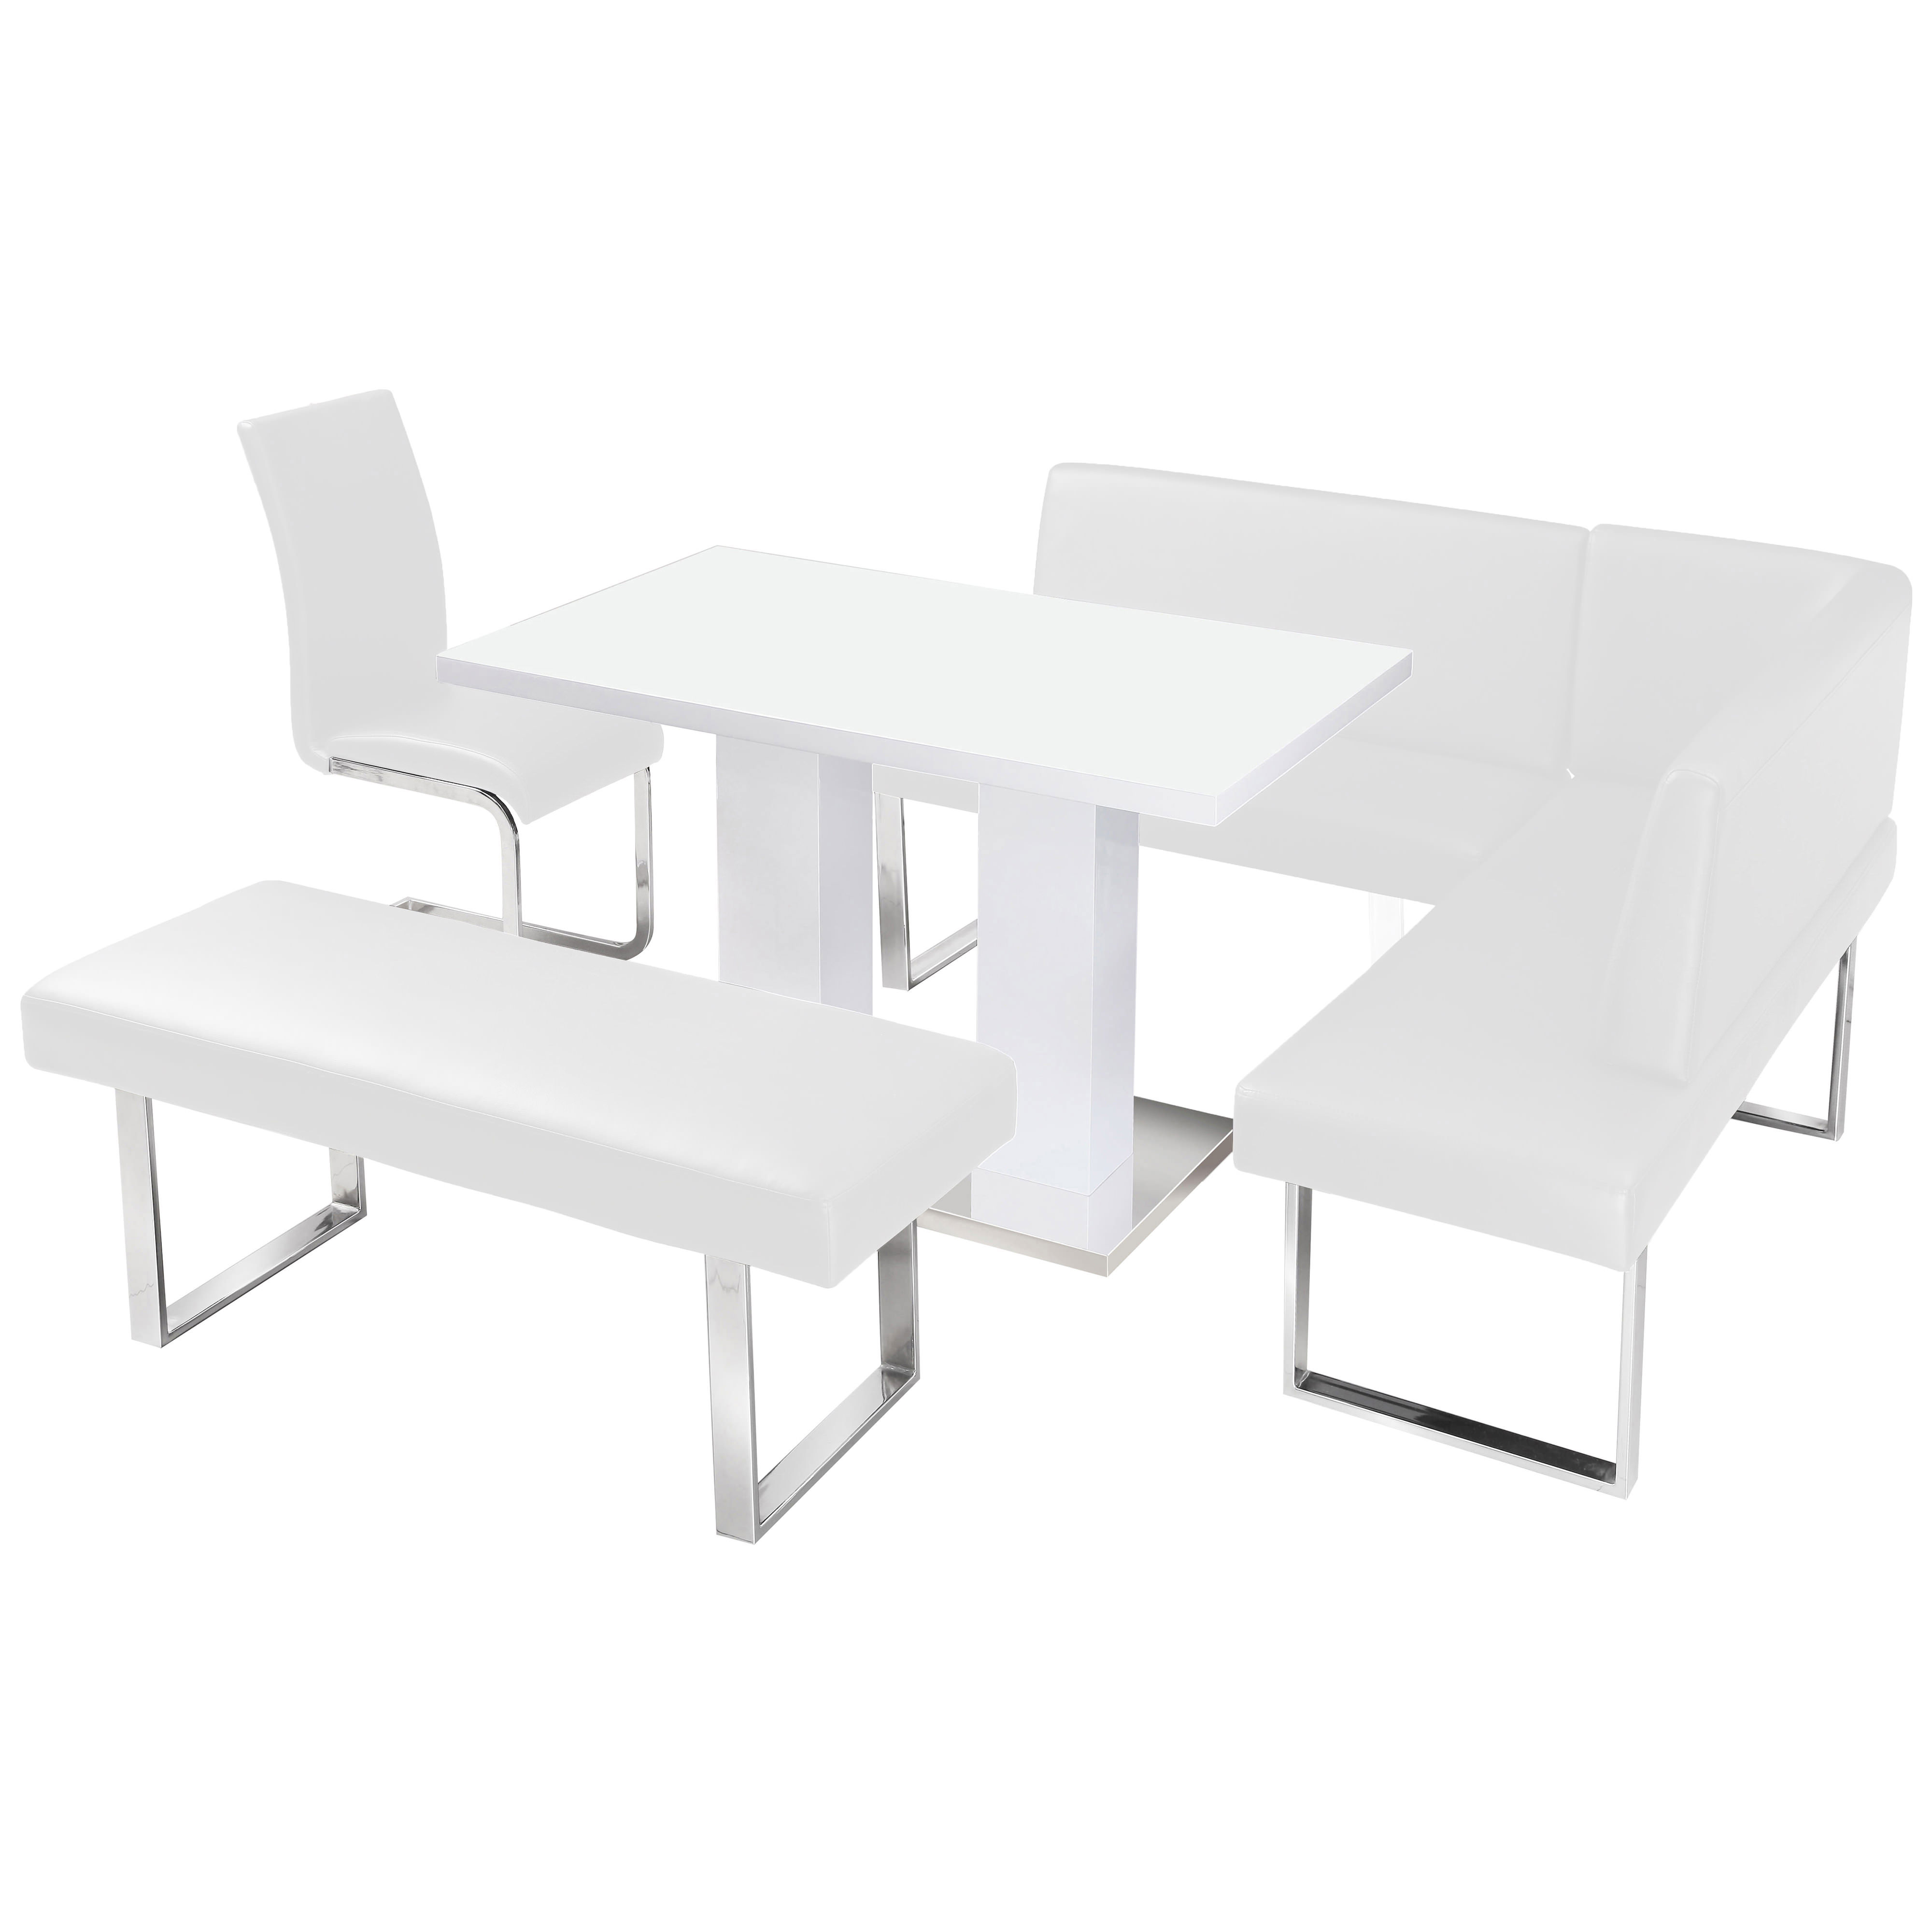 High Gloss Dining Table and Chair Set with Corner Bench  : h823libertydiningsetchaircorner26straightbenchwhite1 from www.ebay.co.uk size 4000 x 4000 jpeg 317kB